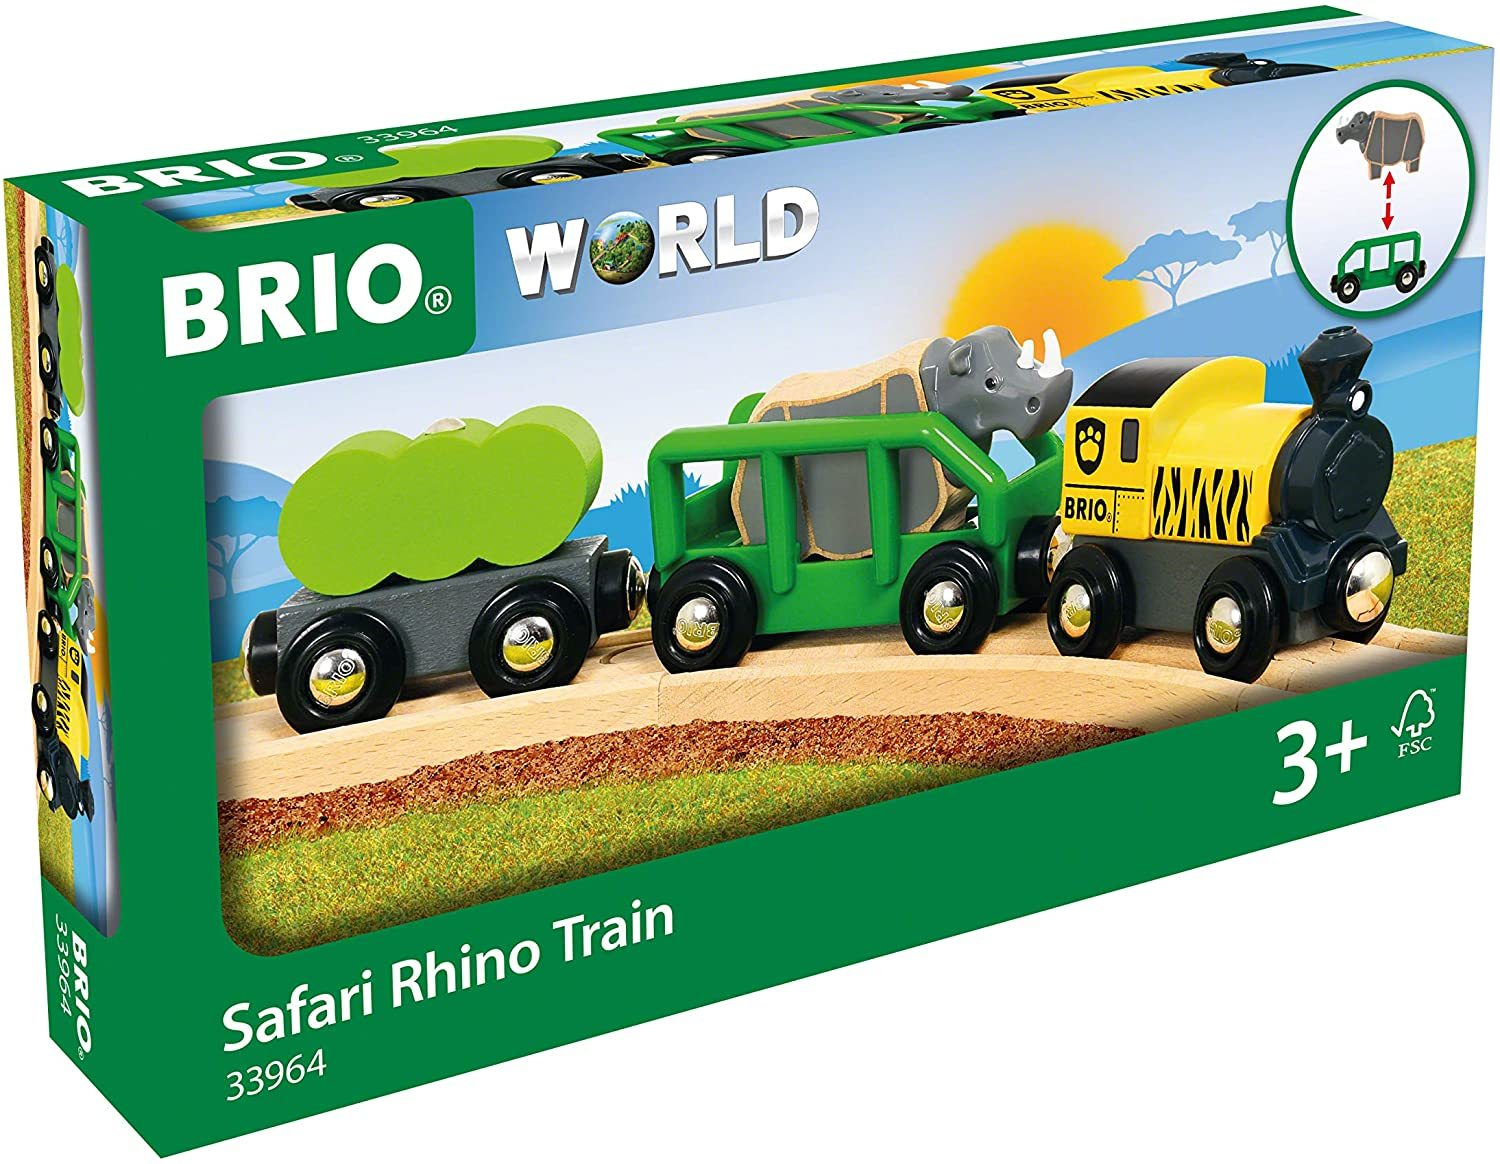 Brio: World - Safari Rhino Train